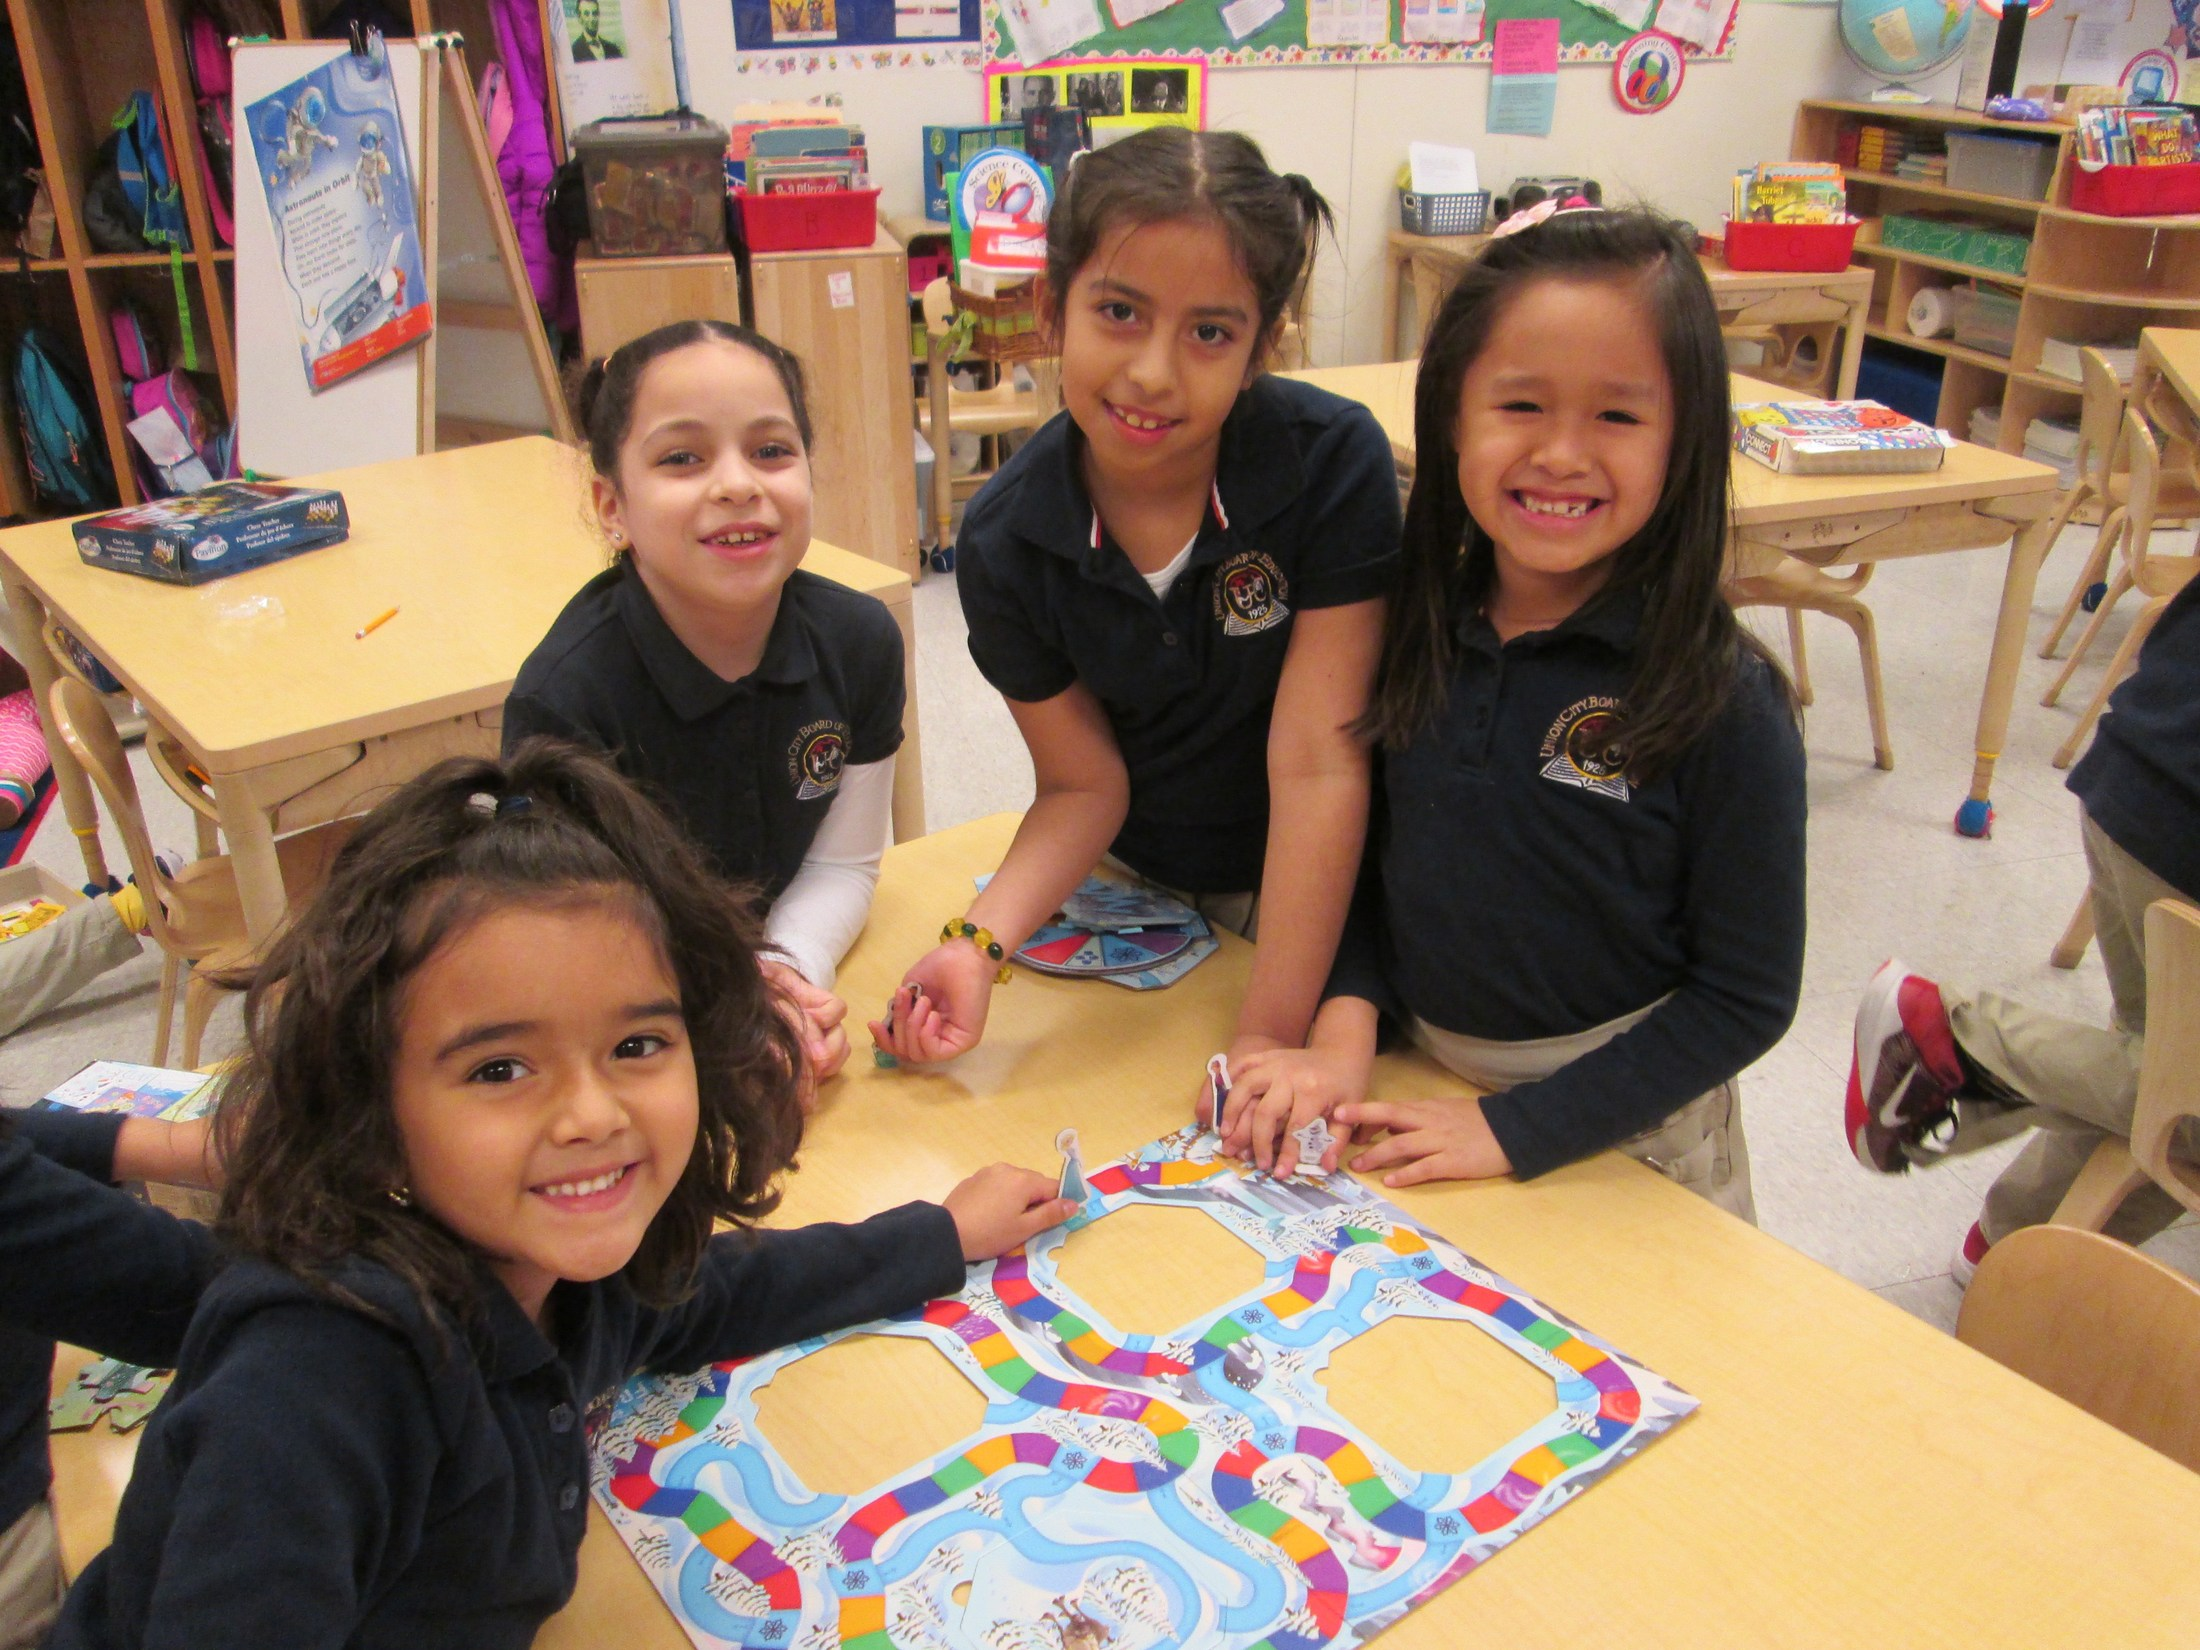 girls playing a board game together